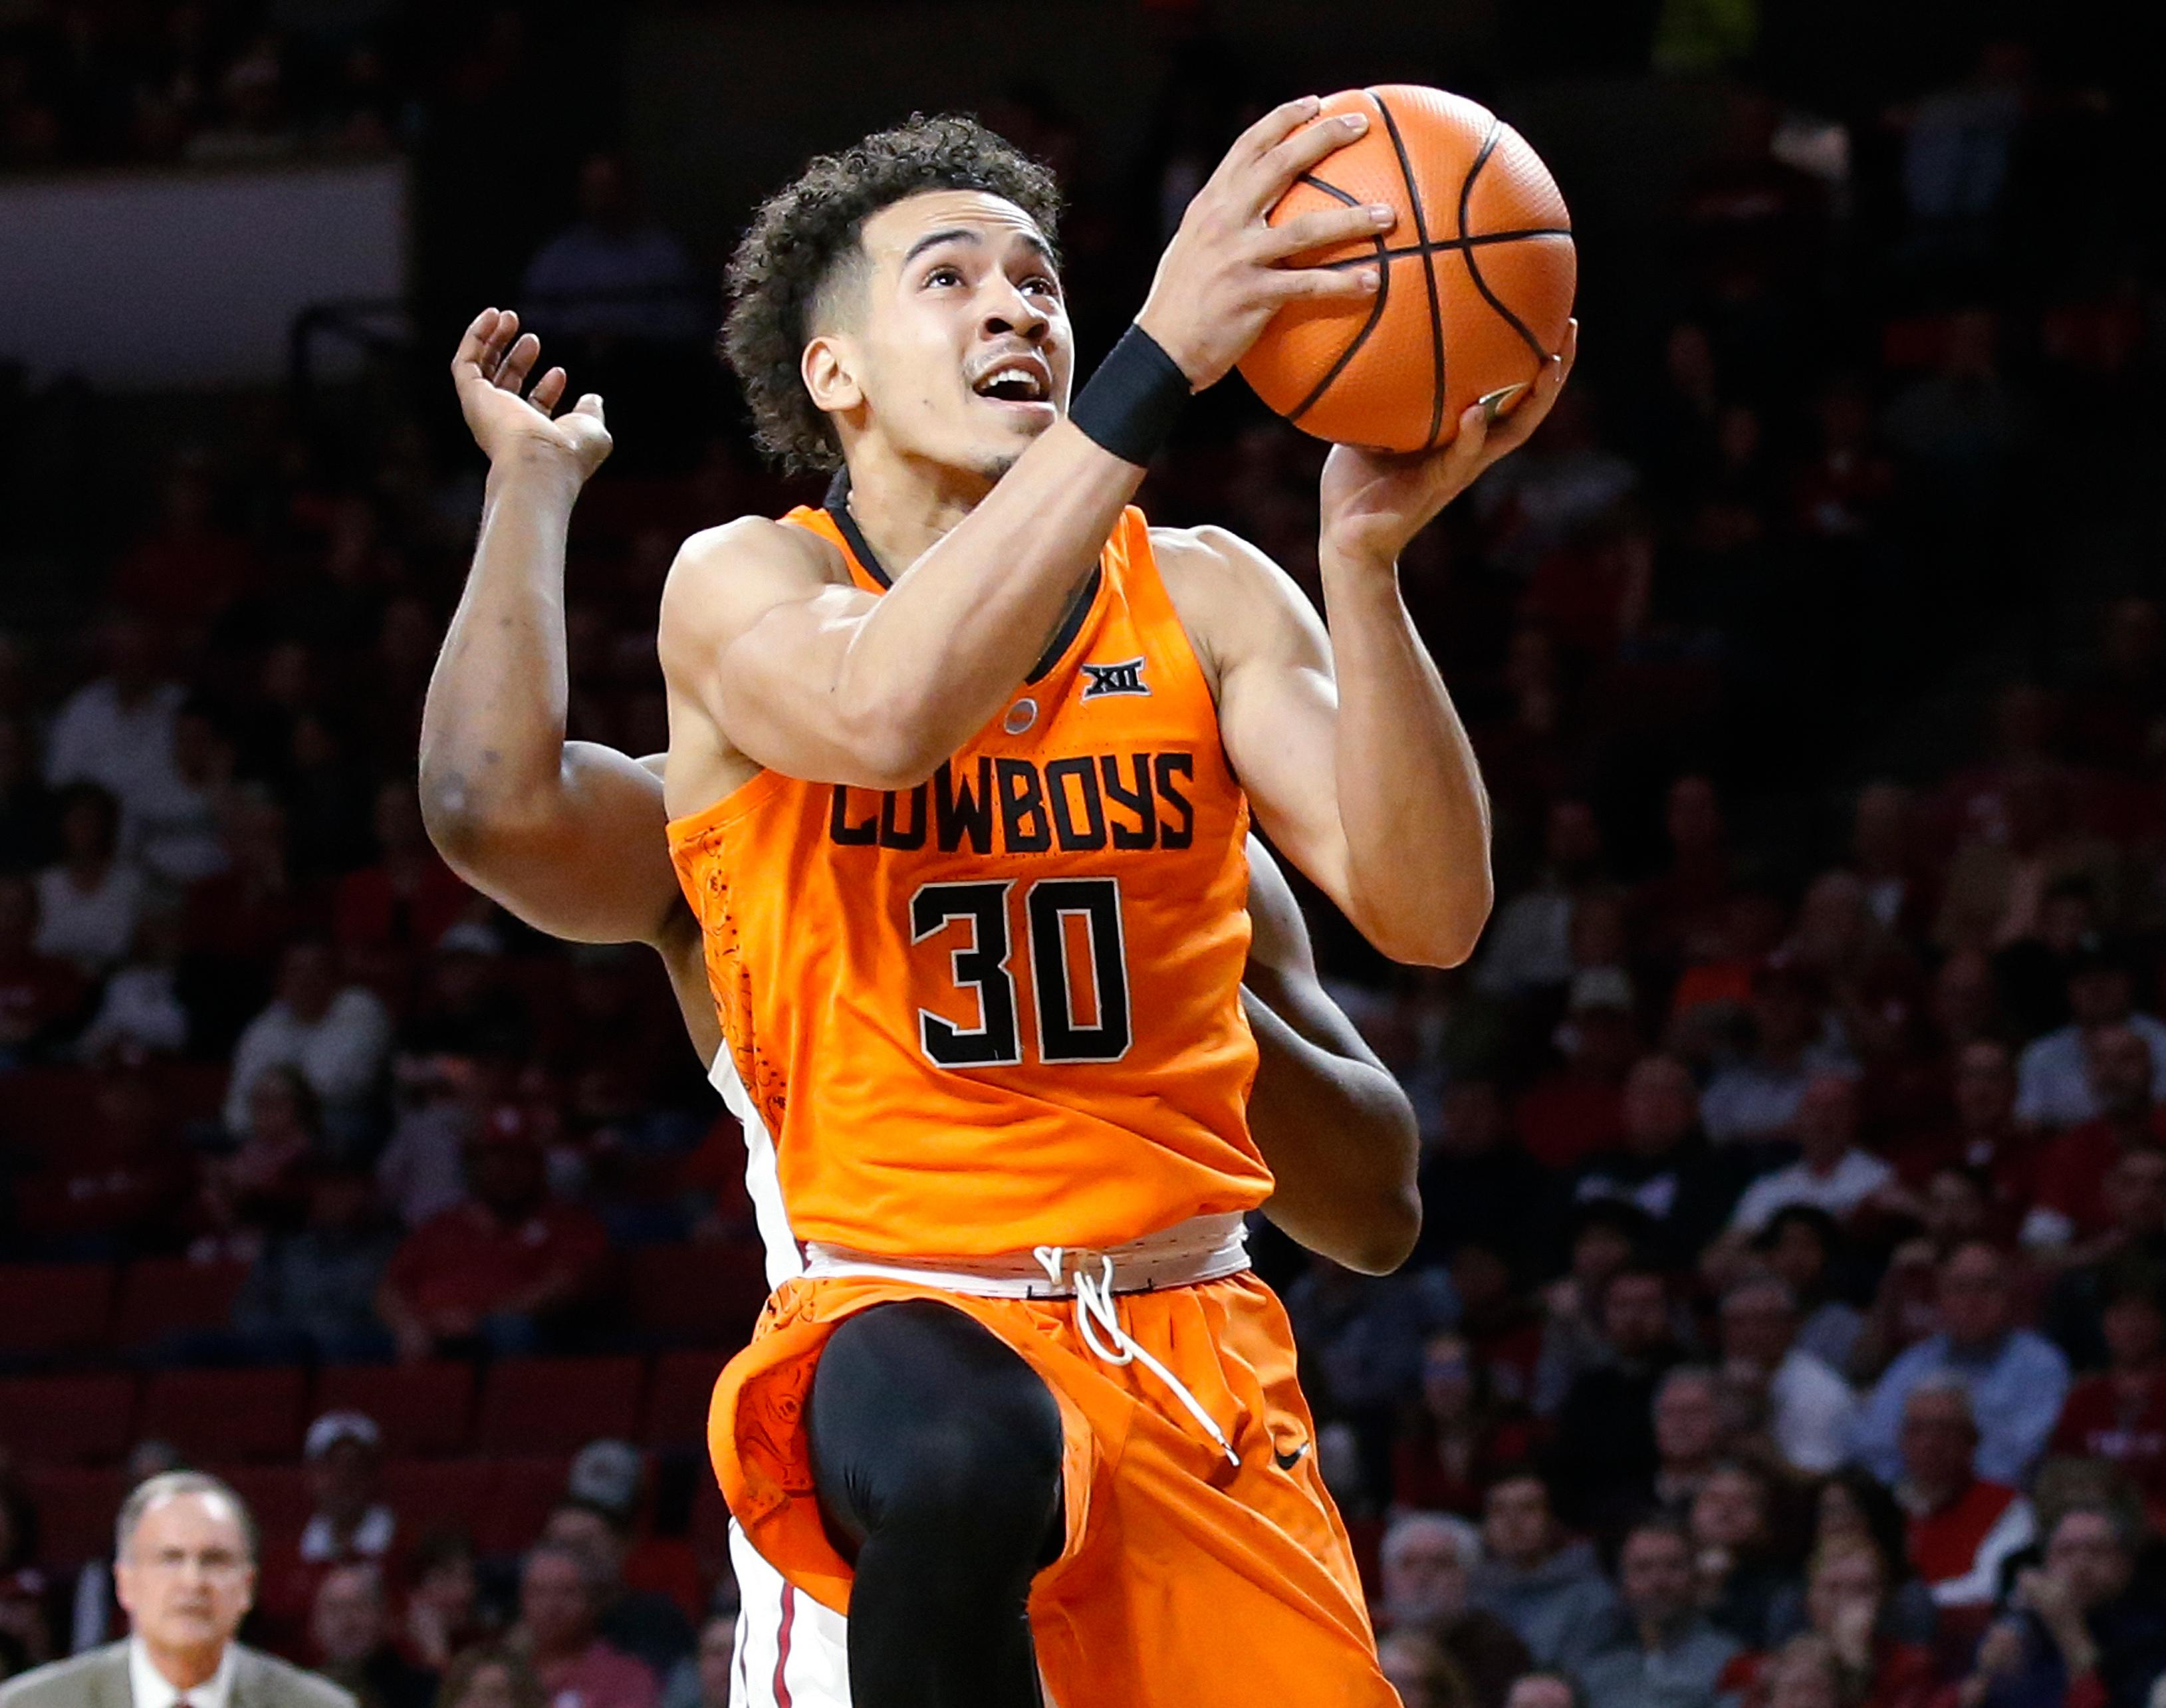 Oklahoma State guard Jeffrey Carroll (30) shoots during the first half of the team's NCAA college basketball game against Oklahoma in Norman, Okla., Wednesday, Jan. 3, 2018. (AP Photo/Sue Ogrocki)